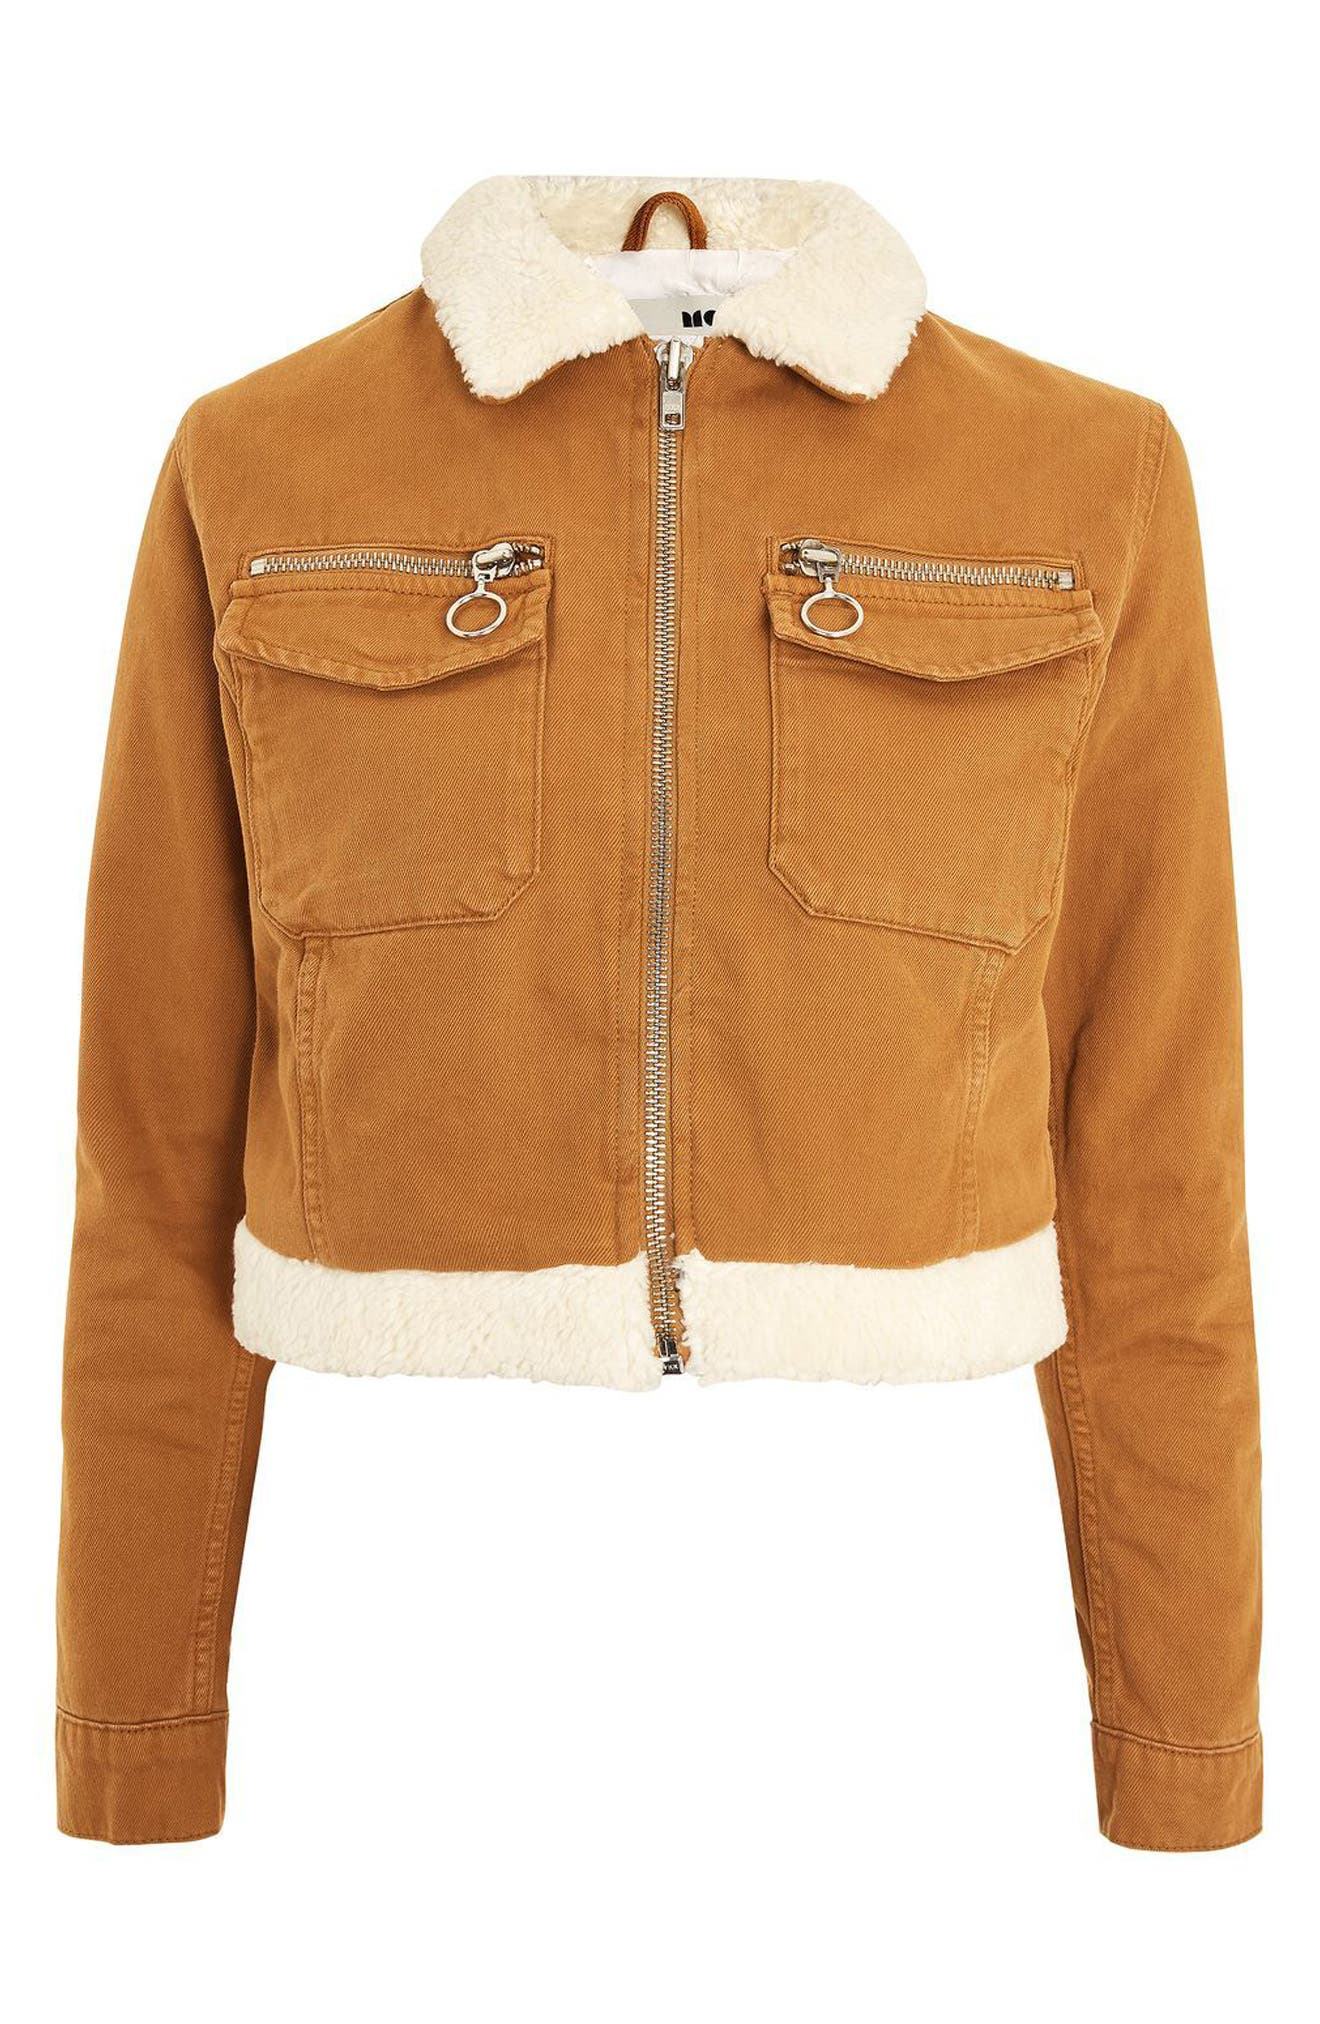 Borg Trim Crop Denim Jacket,                             Alternate thumbnail 5, color,                             Tan